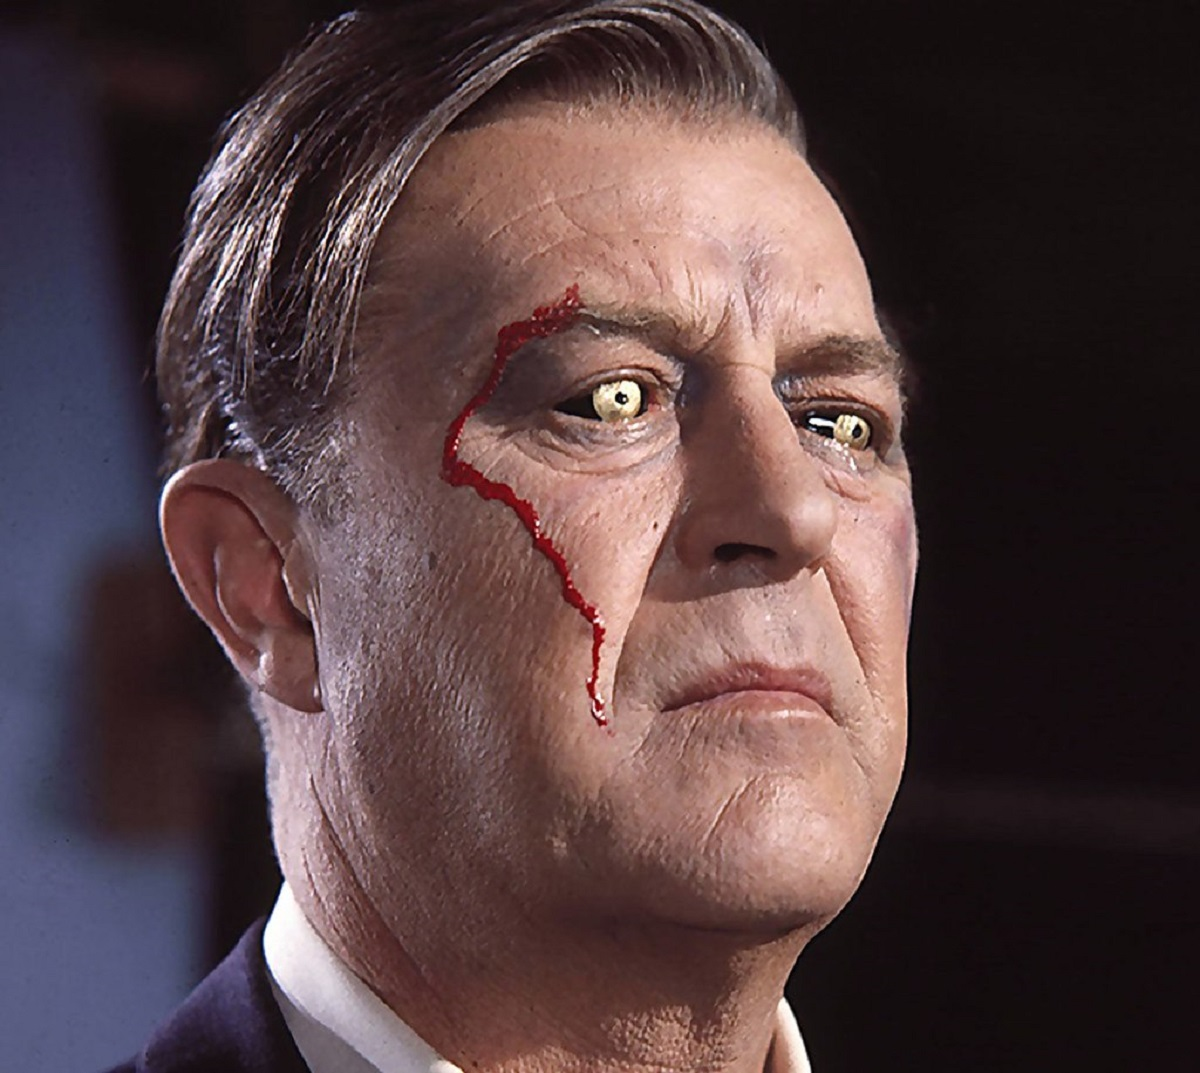 Ray Milland with x-ray eyes in X - The Man with X-Ray Eyes (1963)